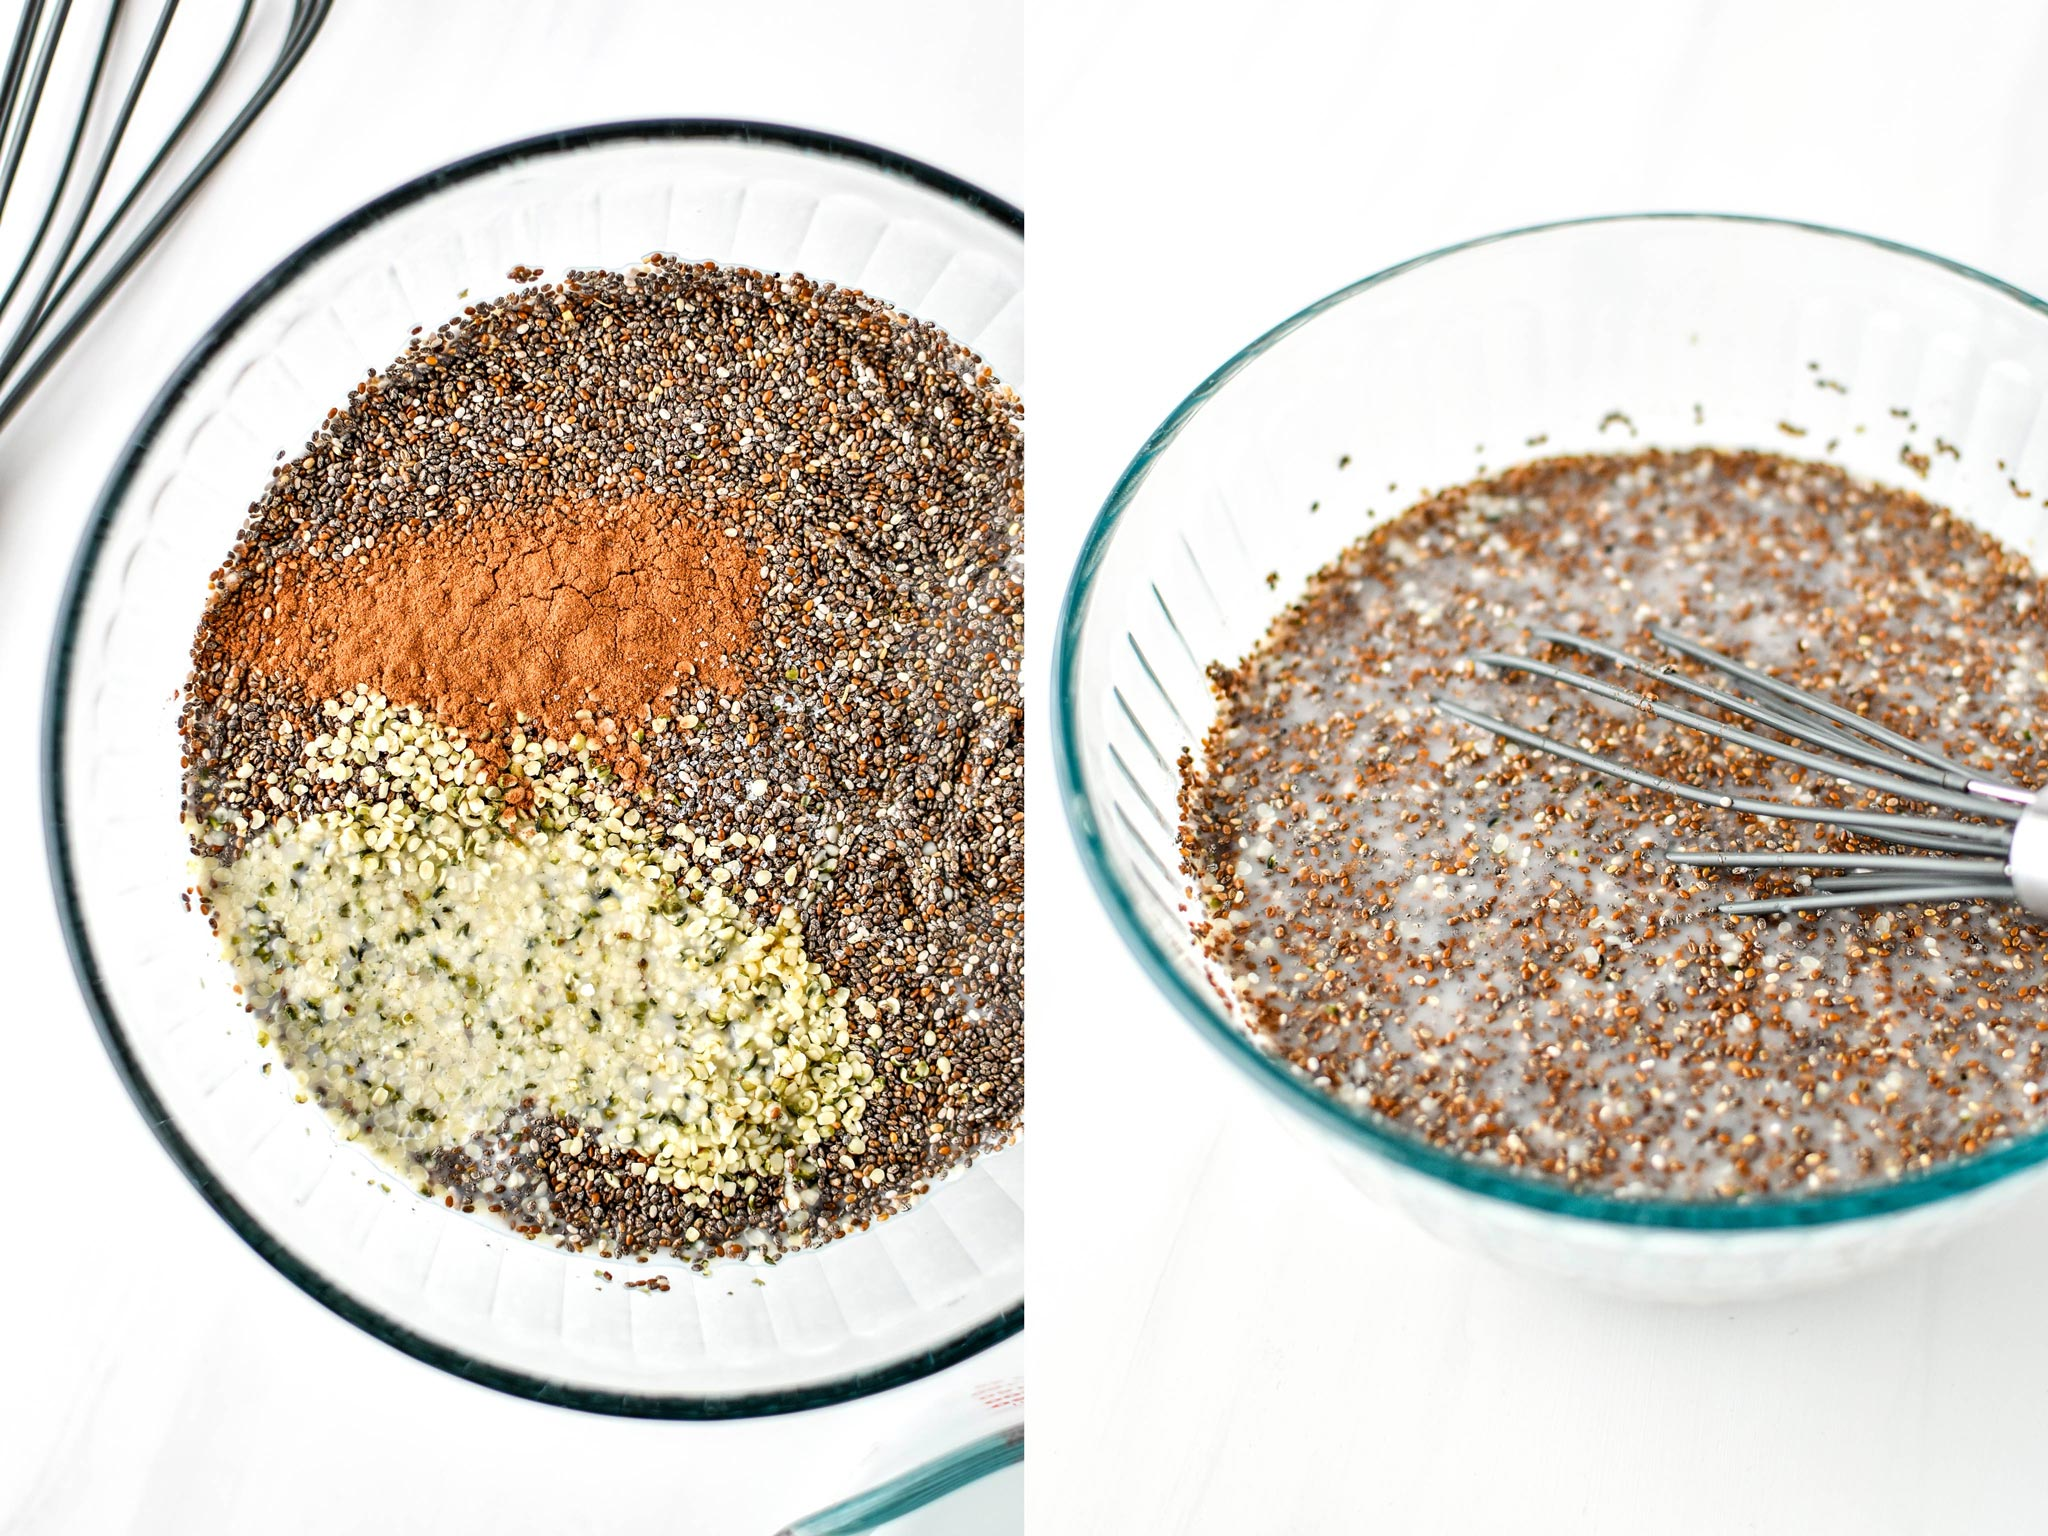 Mixing up chia seeds with almond milk to create chia pudding breakfast parfaits.